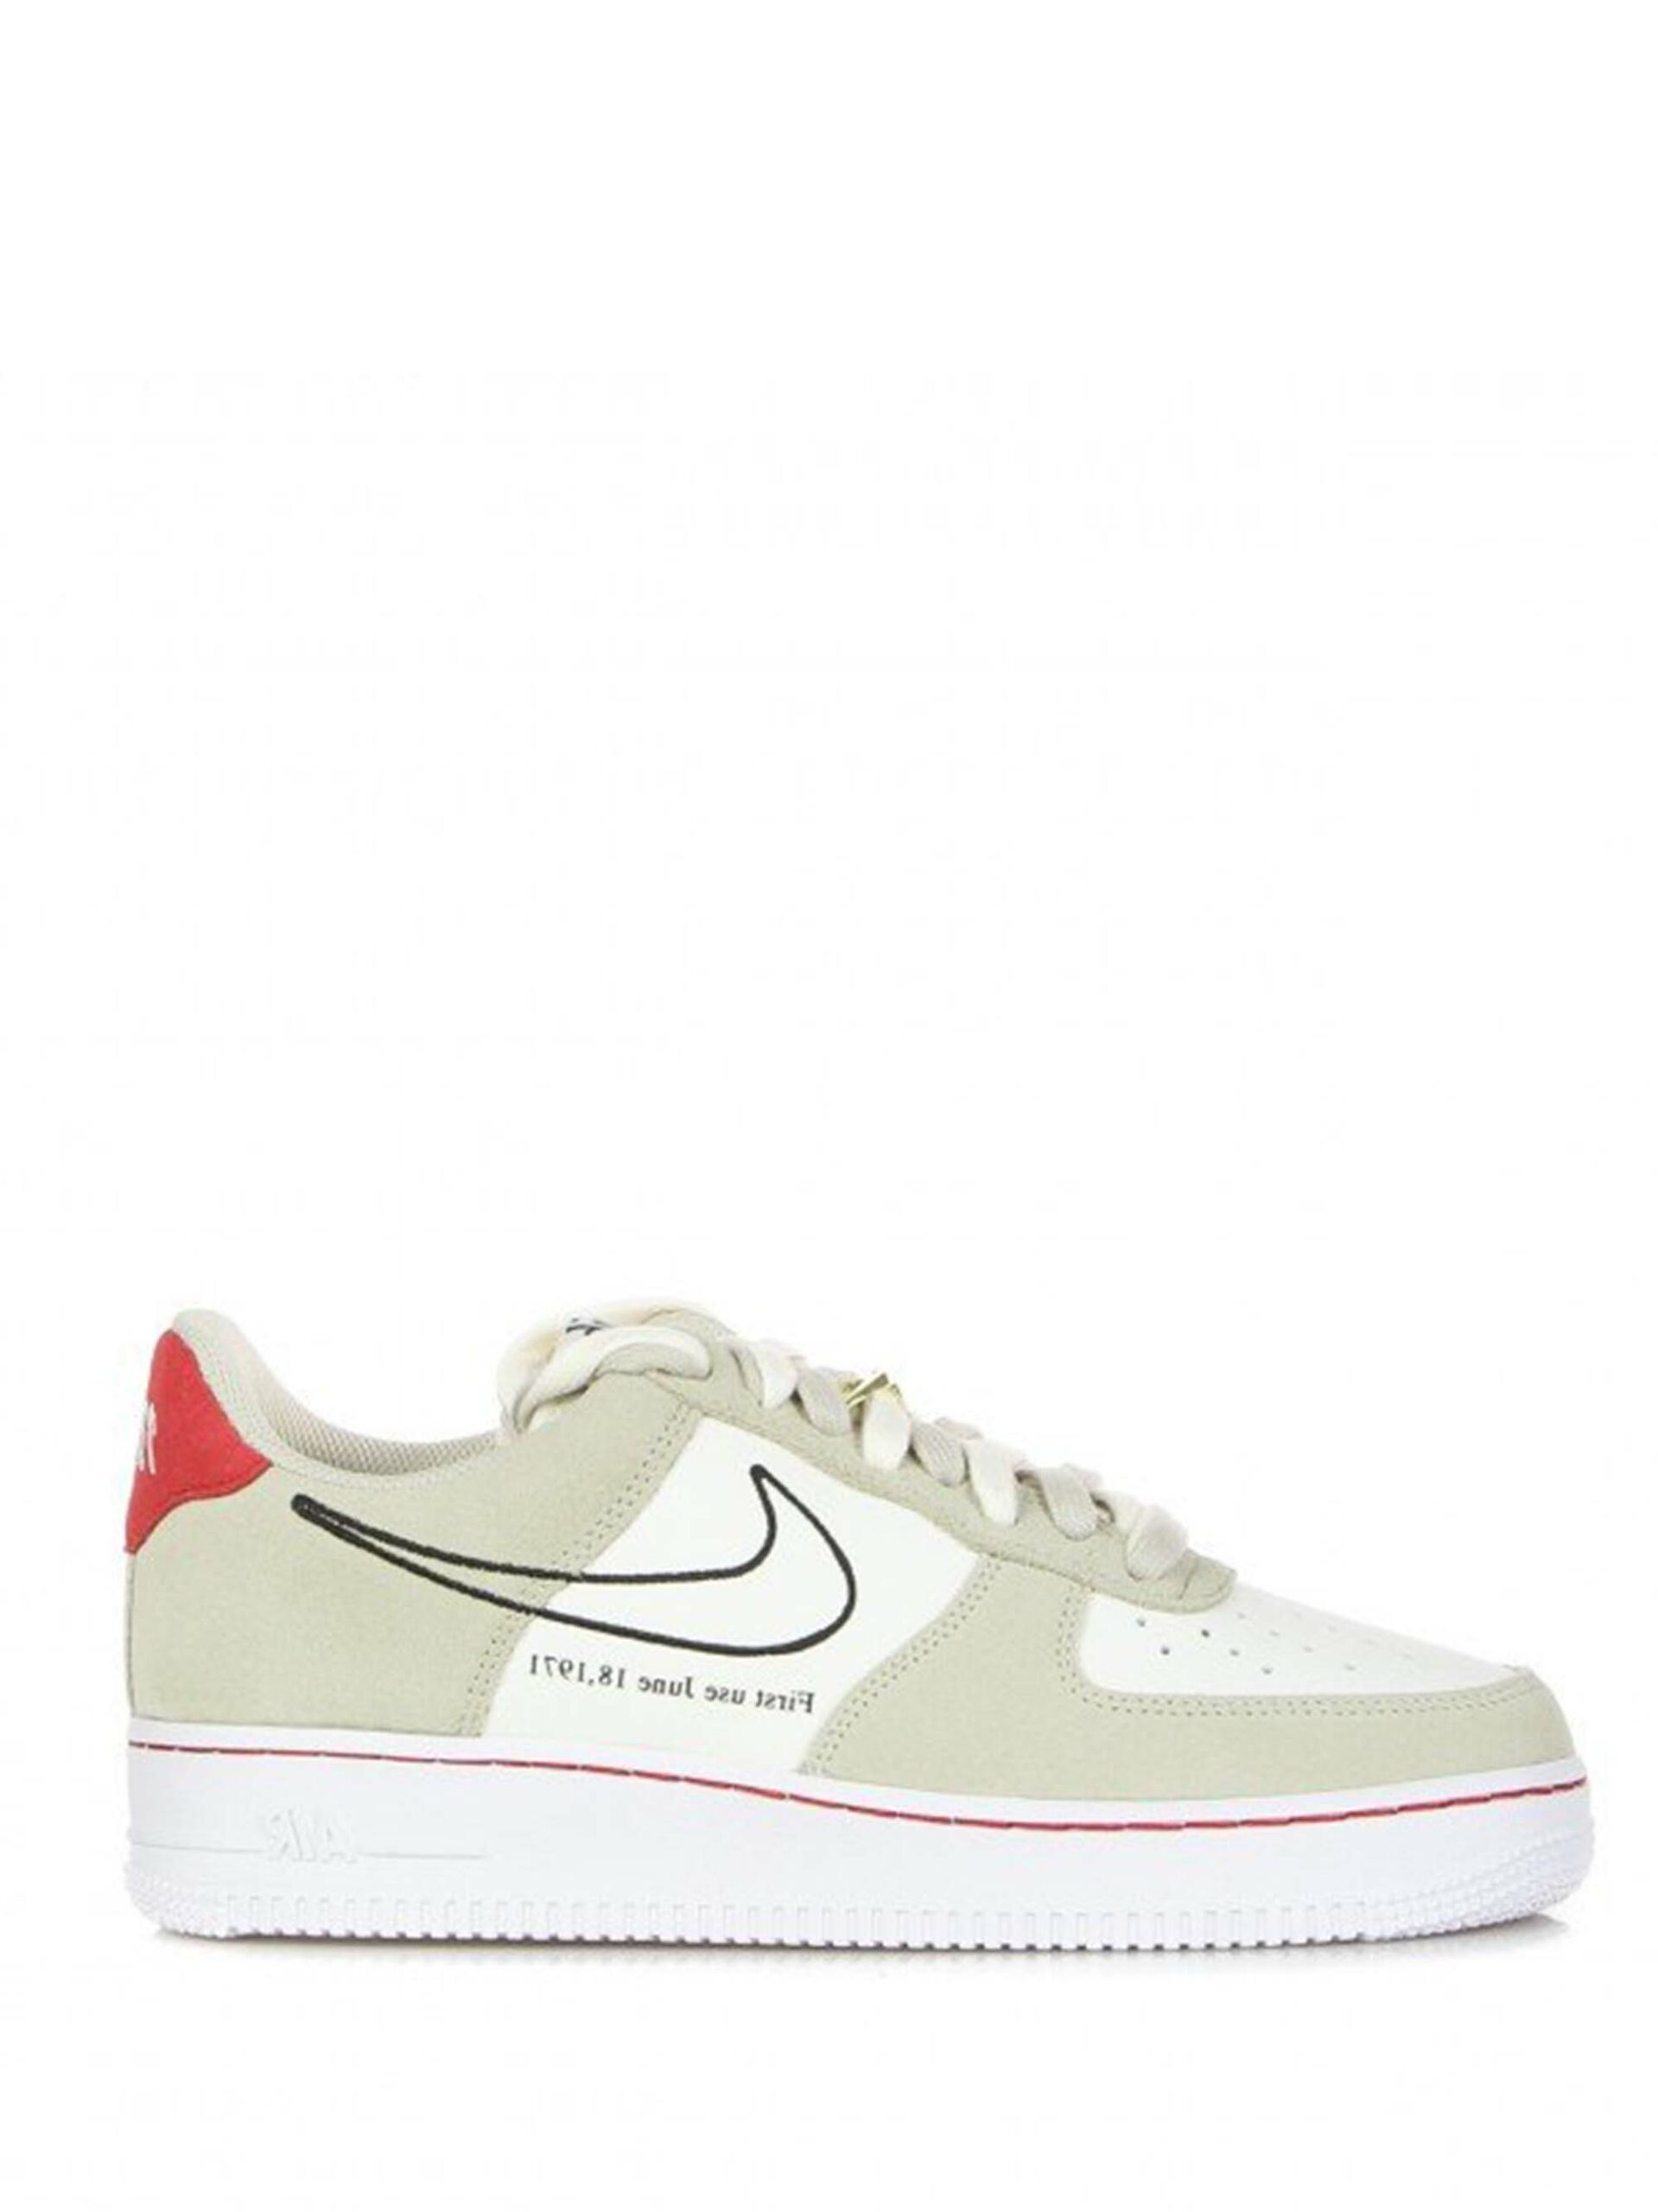 <p class='small-title'>NIKE</p>Air force 1 '07 lv8